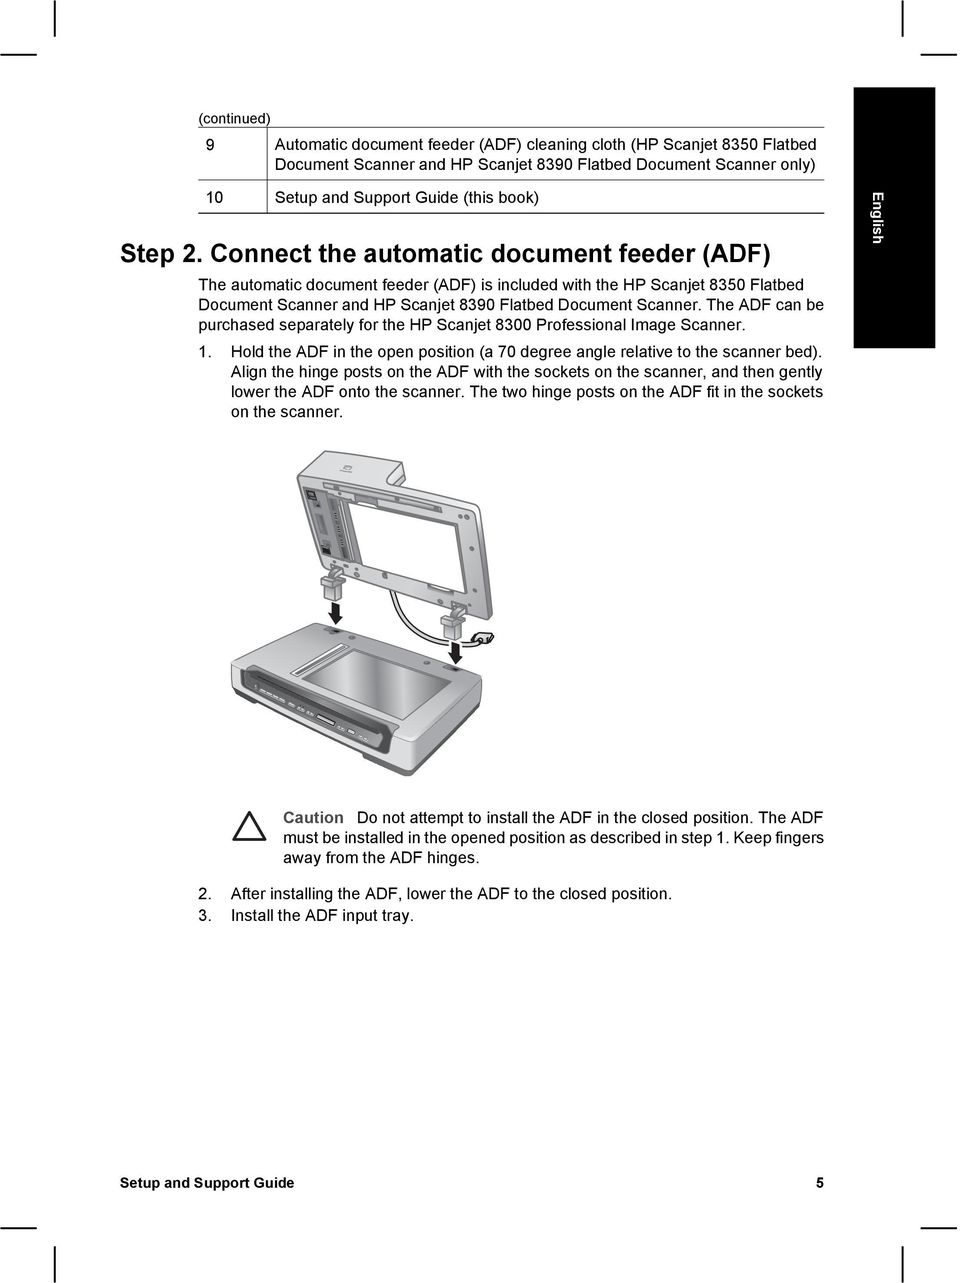 Connect the automatic document feeder (ADF) The automatic document feeder (ADF) is included with the HP Scanjet 8350 Flatbed Document Scanner and HP Scanjet 8390 Flatbed Document Scanner.